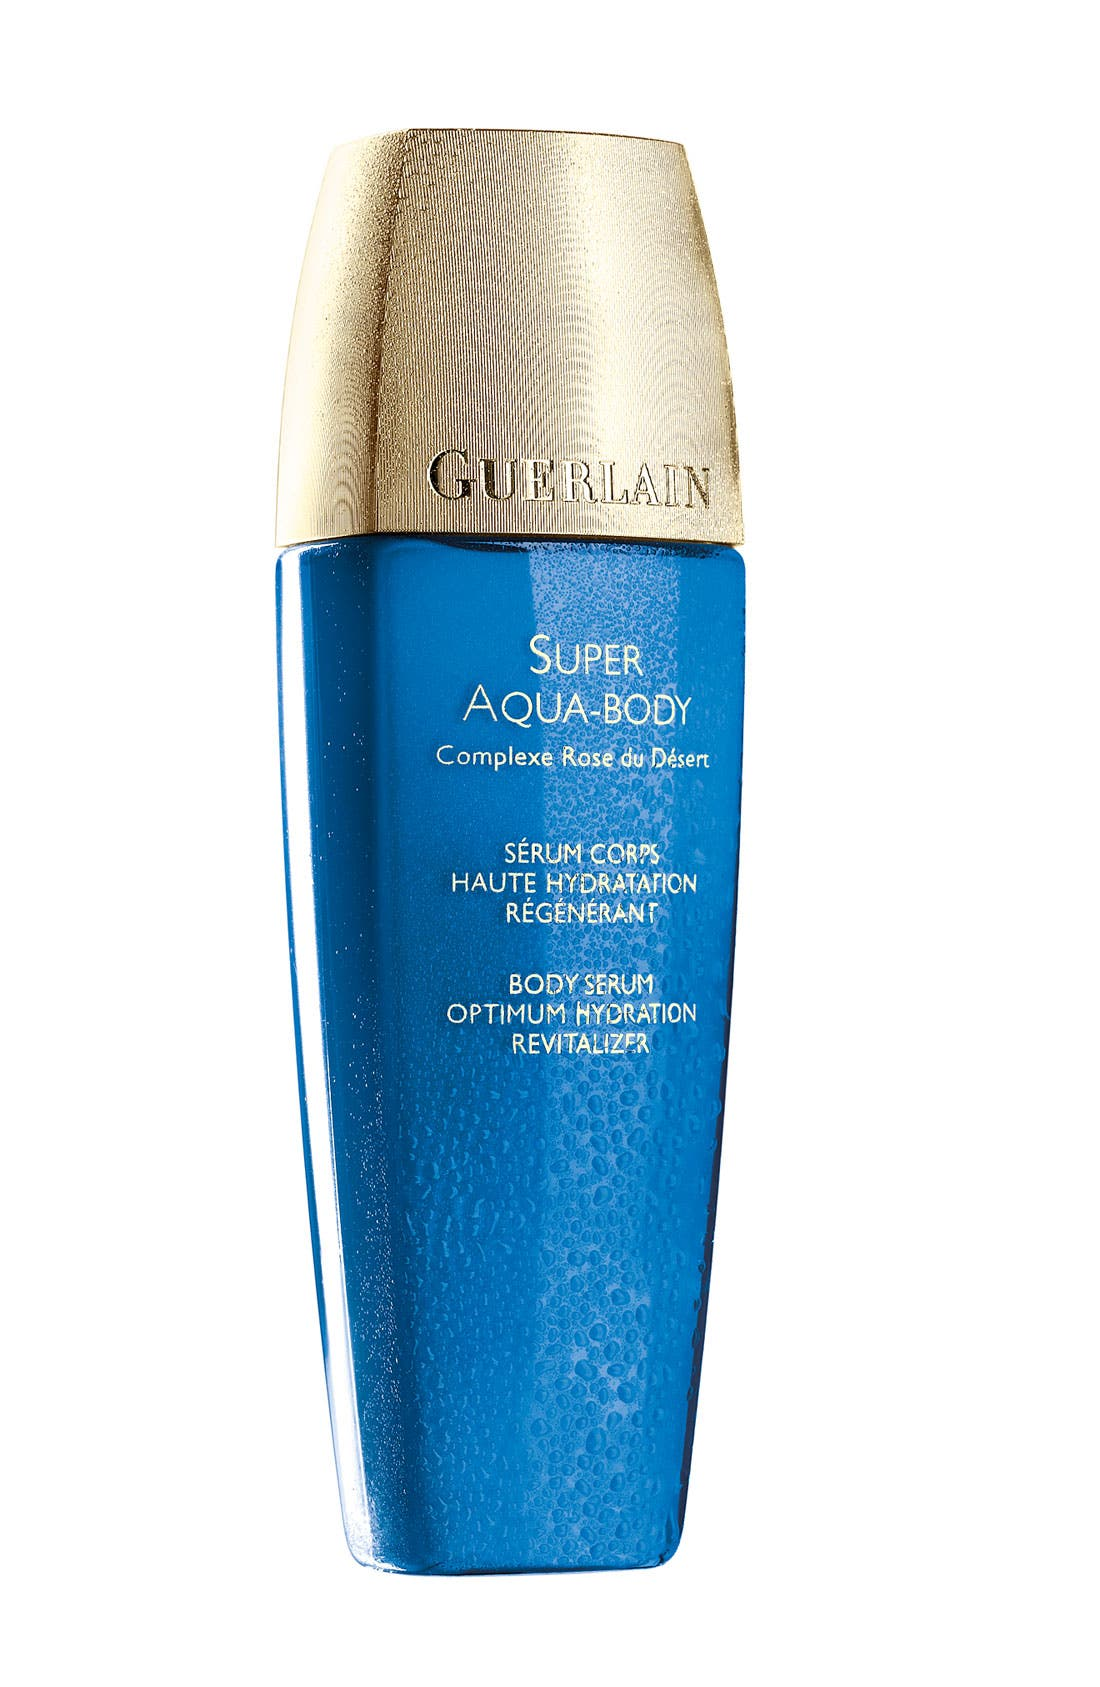 Guerlain 'Super Aqua-Body' Serum